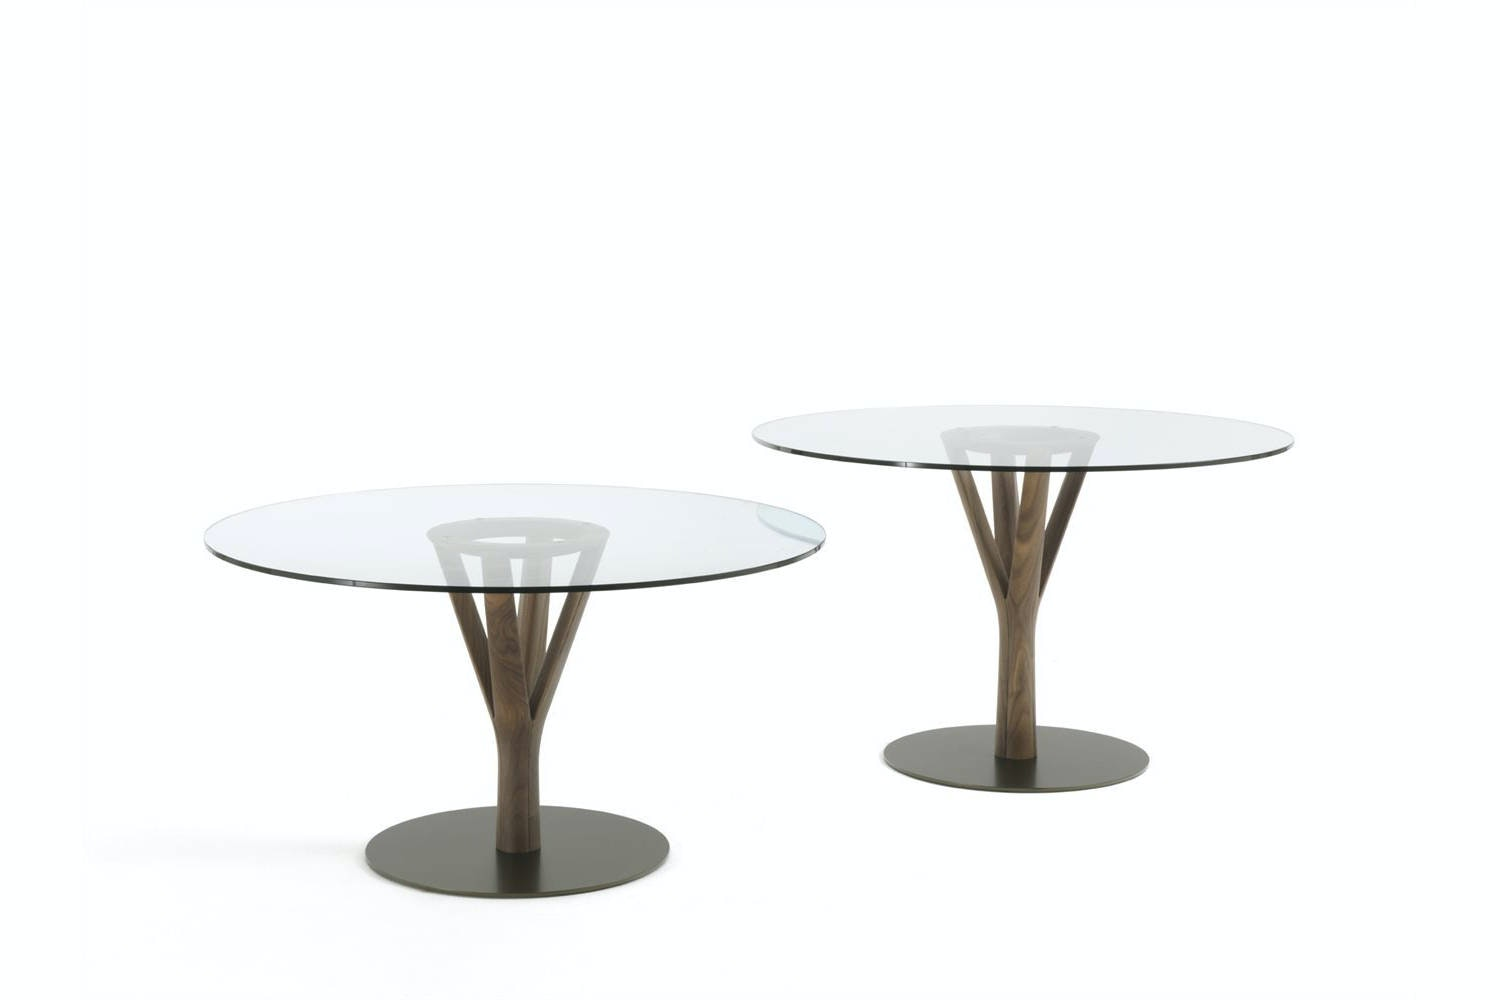 Timber Table by Patrick Jouin for Porada